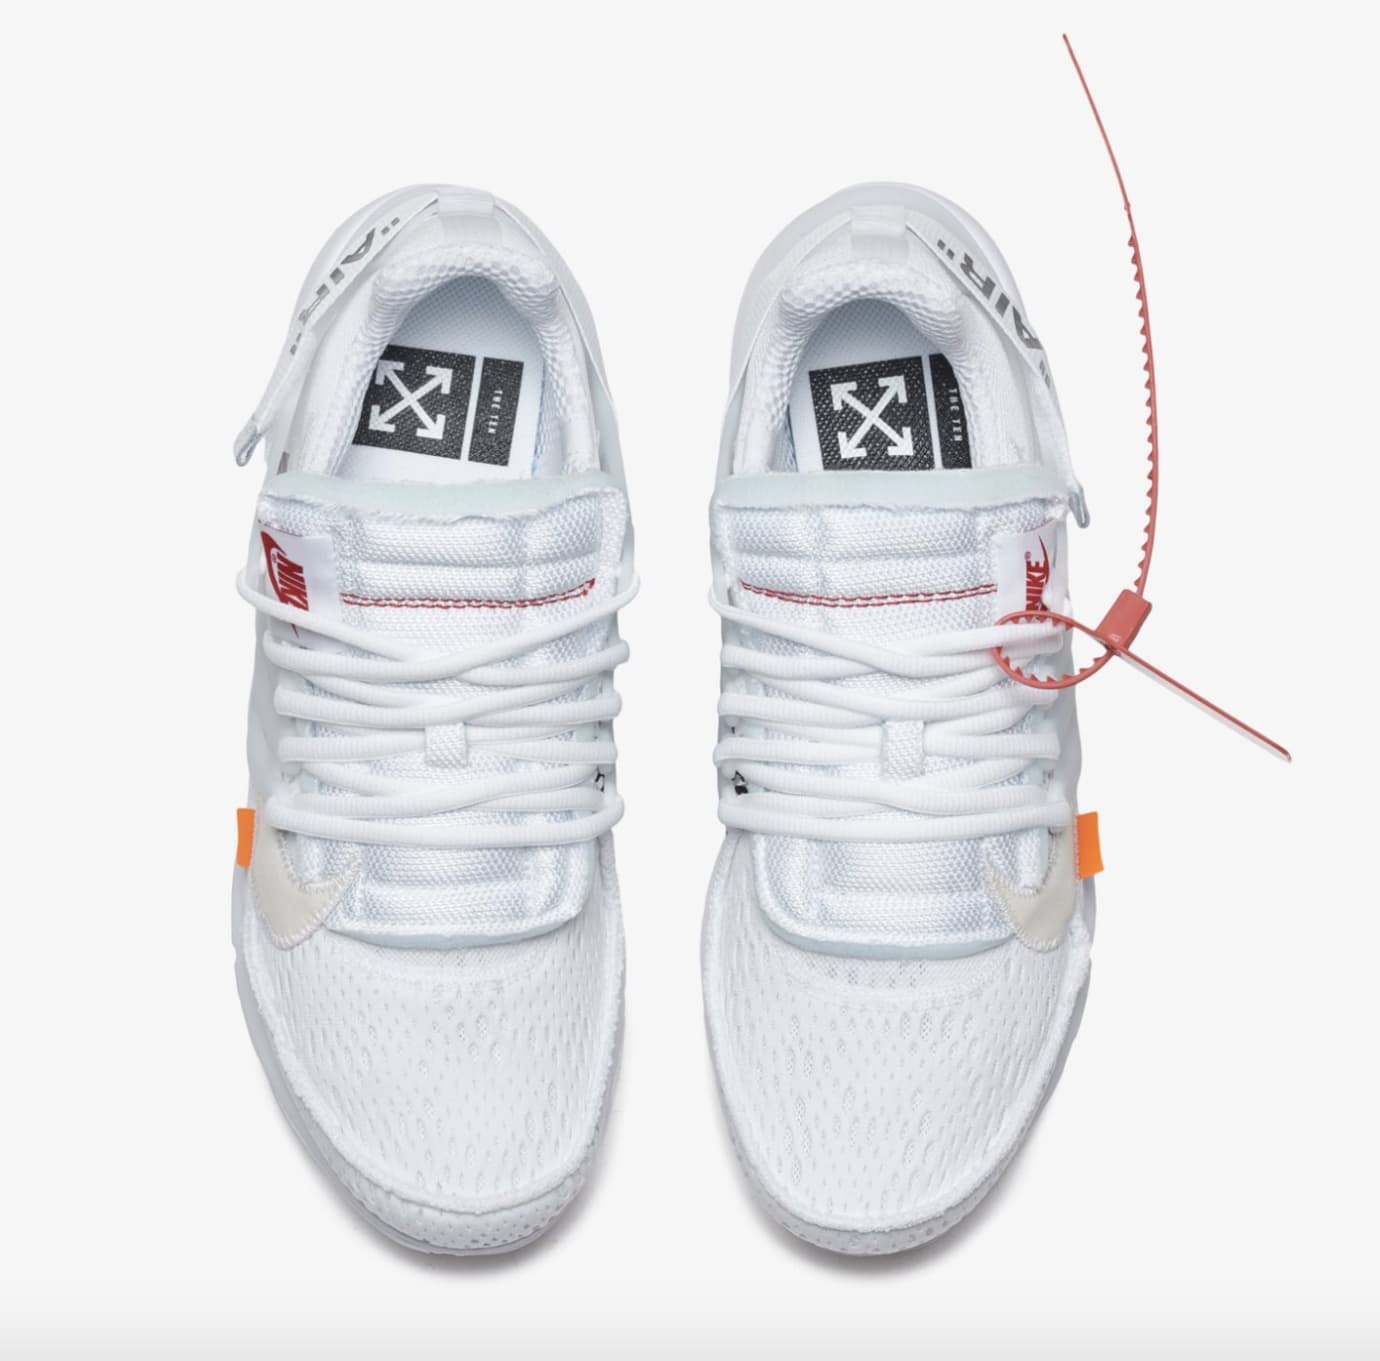 Off-White x Nike Air Presto 'Polar Opposites/White' AA3830-100 (Top)